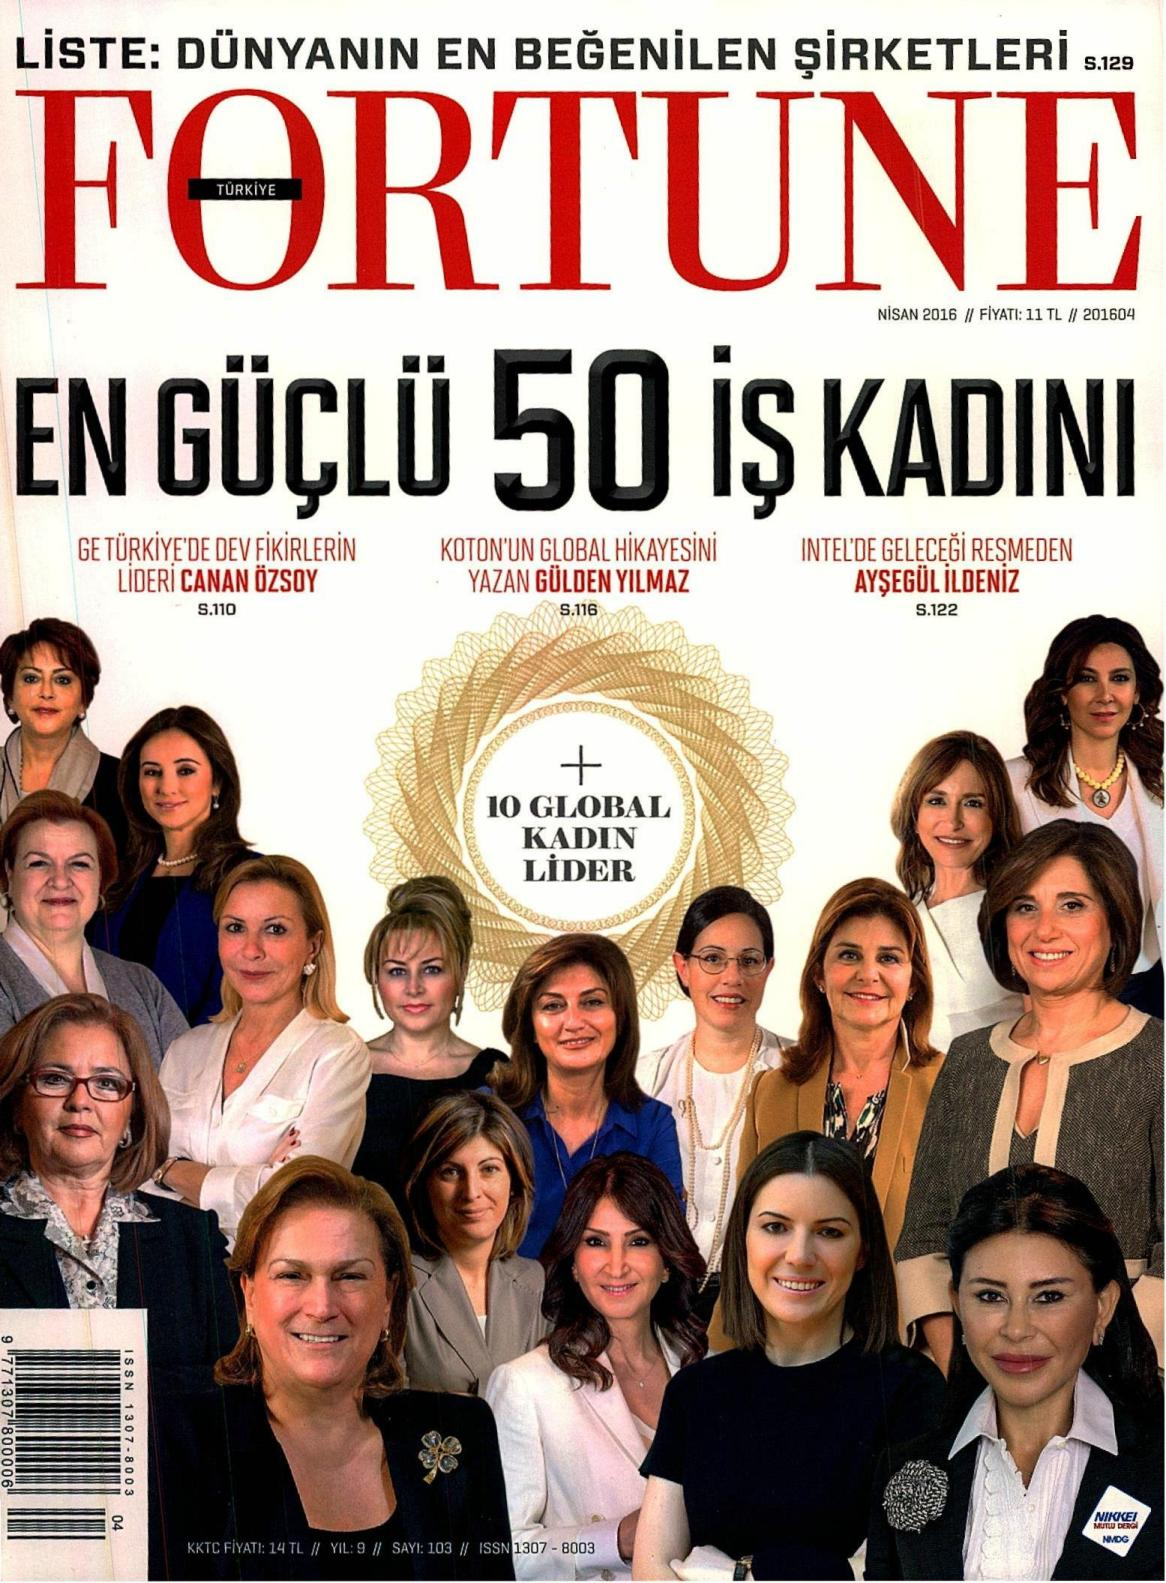 FORTUNE_TURKIYE_20160401_1